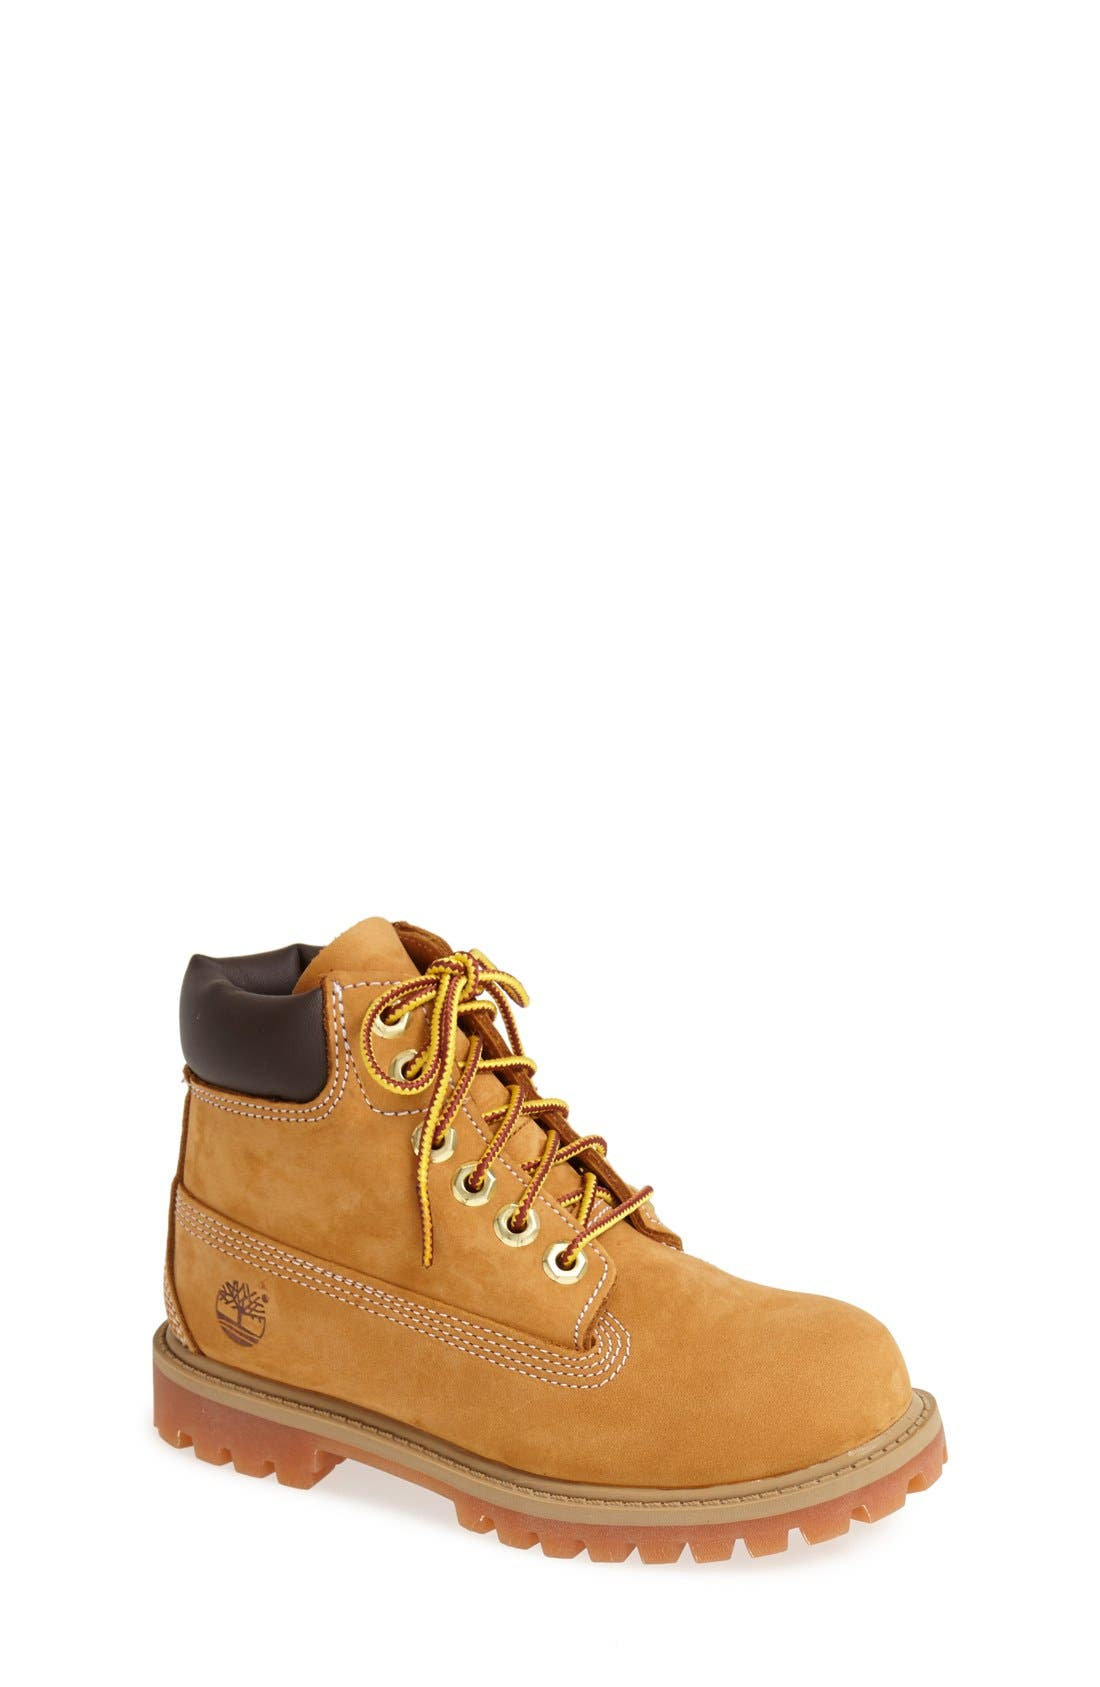 '6 Inch Premium' Waterproof Boot,                         Main,                         color, Wheat Nubuck